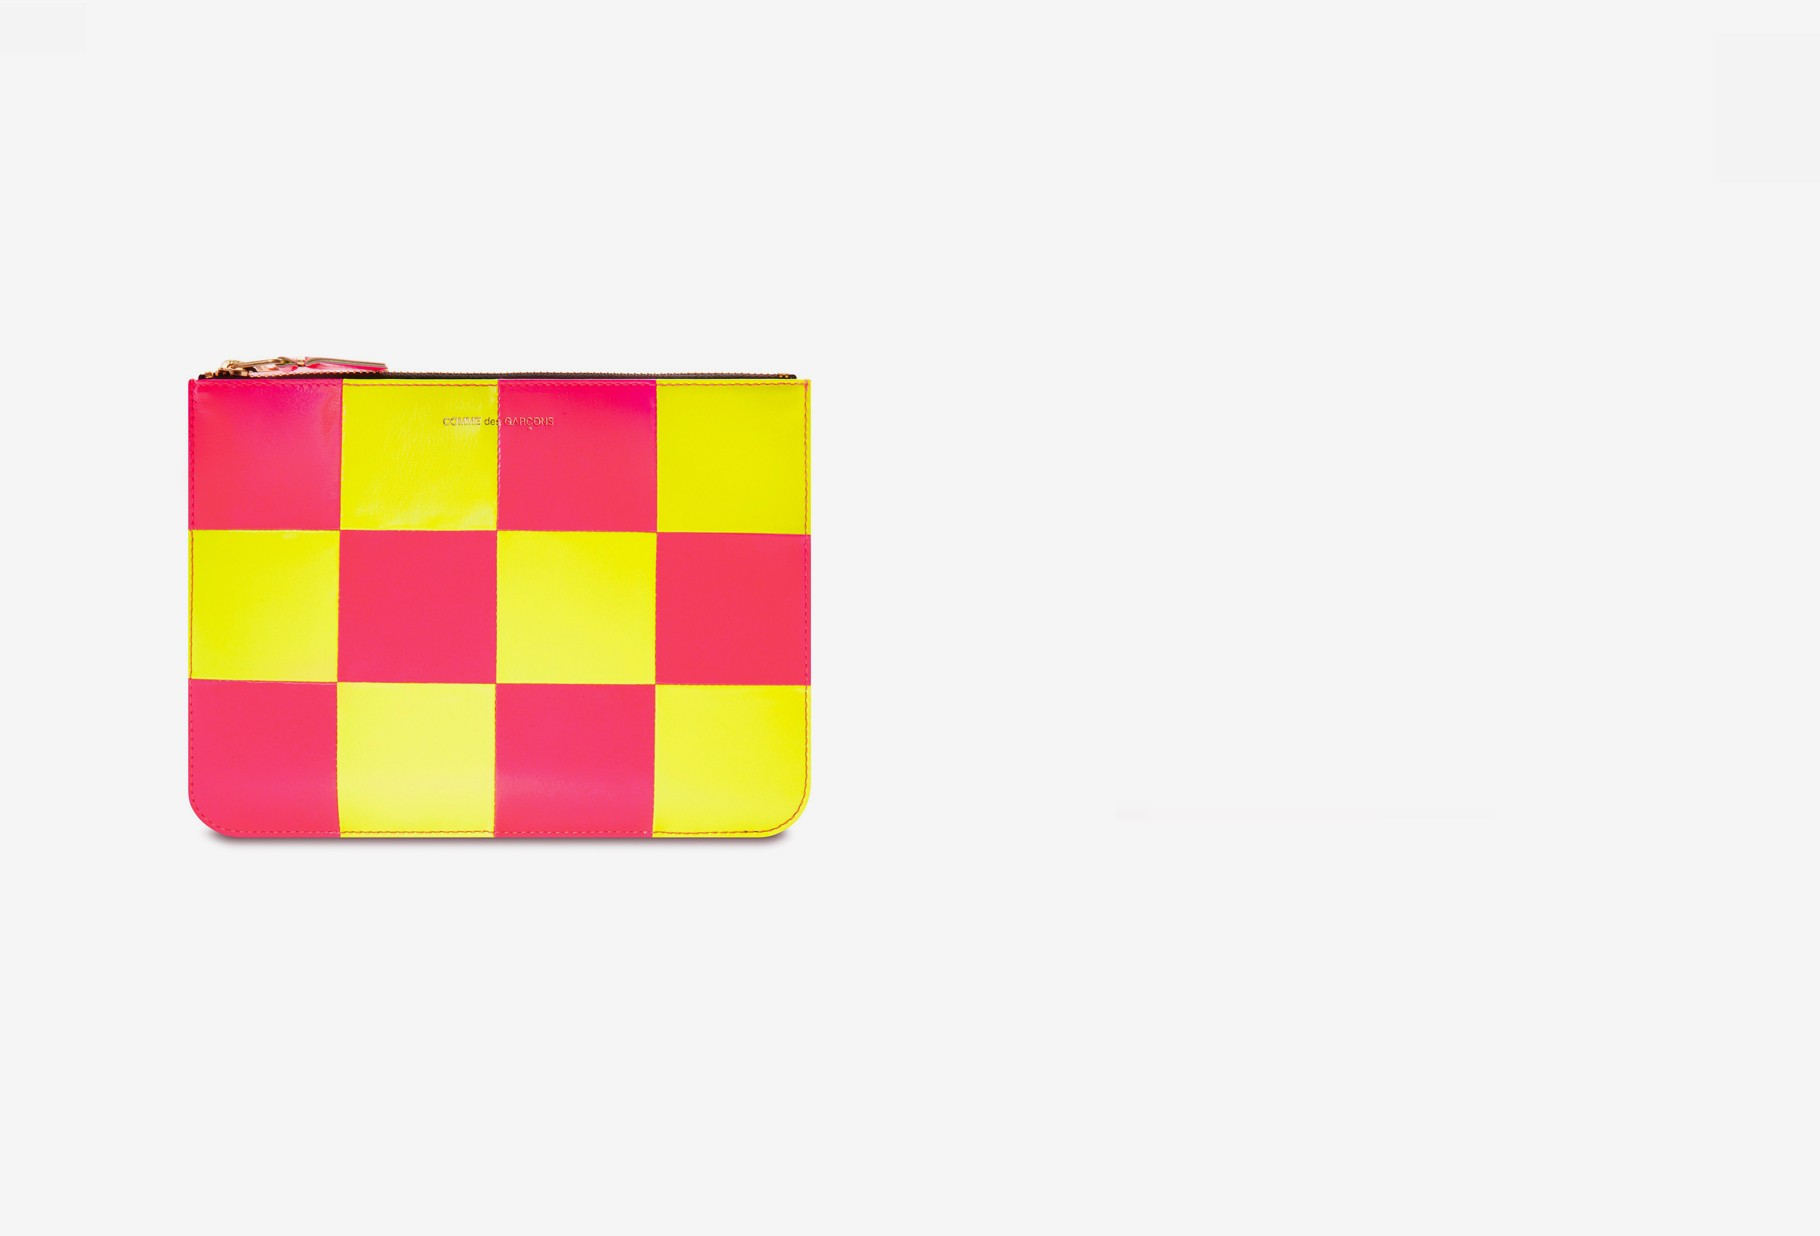 COMME DES GARÇONS WALLETS / Cdg wallet fluo squares Sa5100fs yellow pink